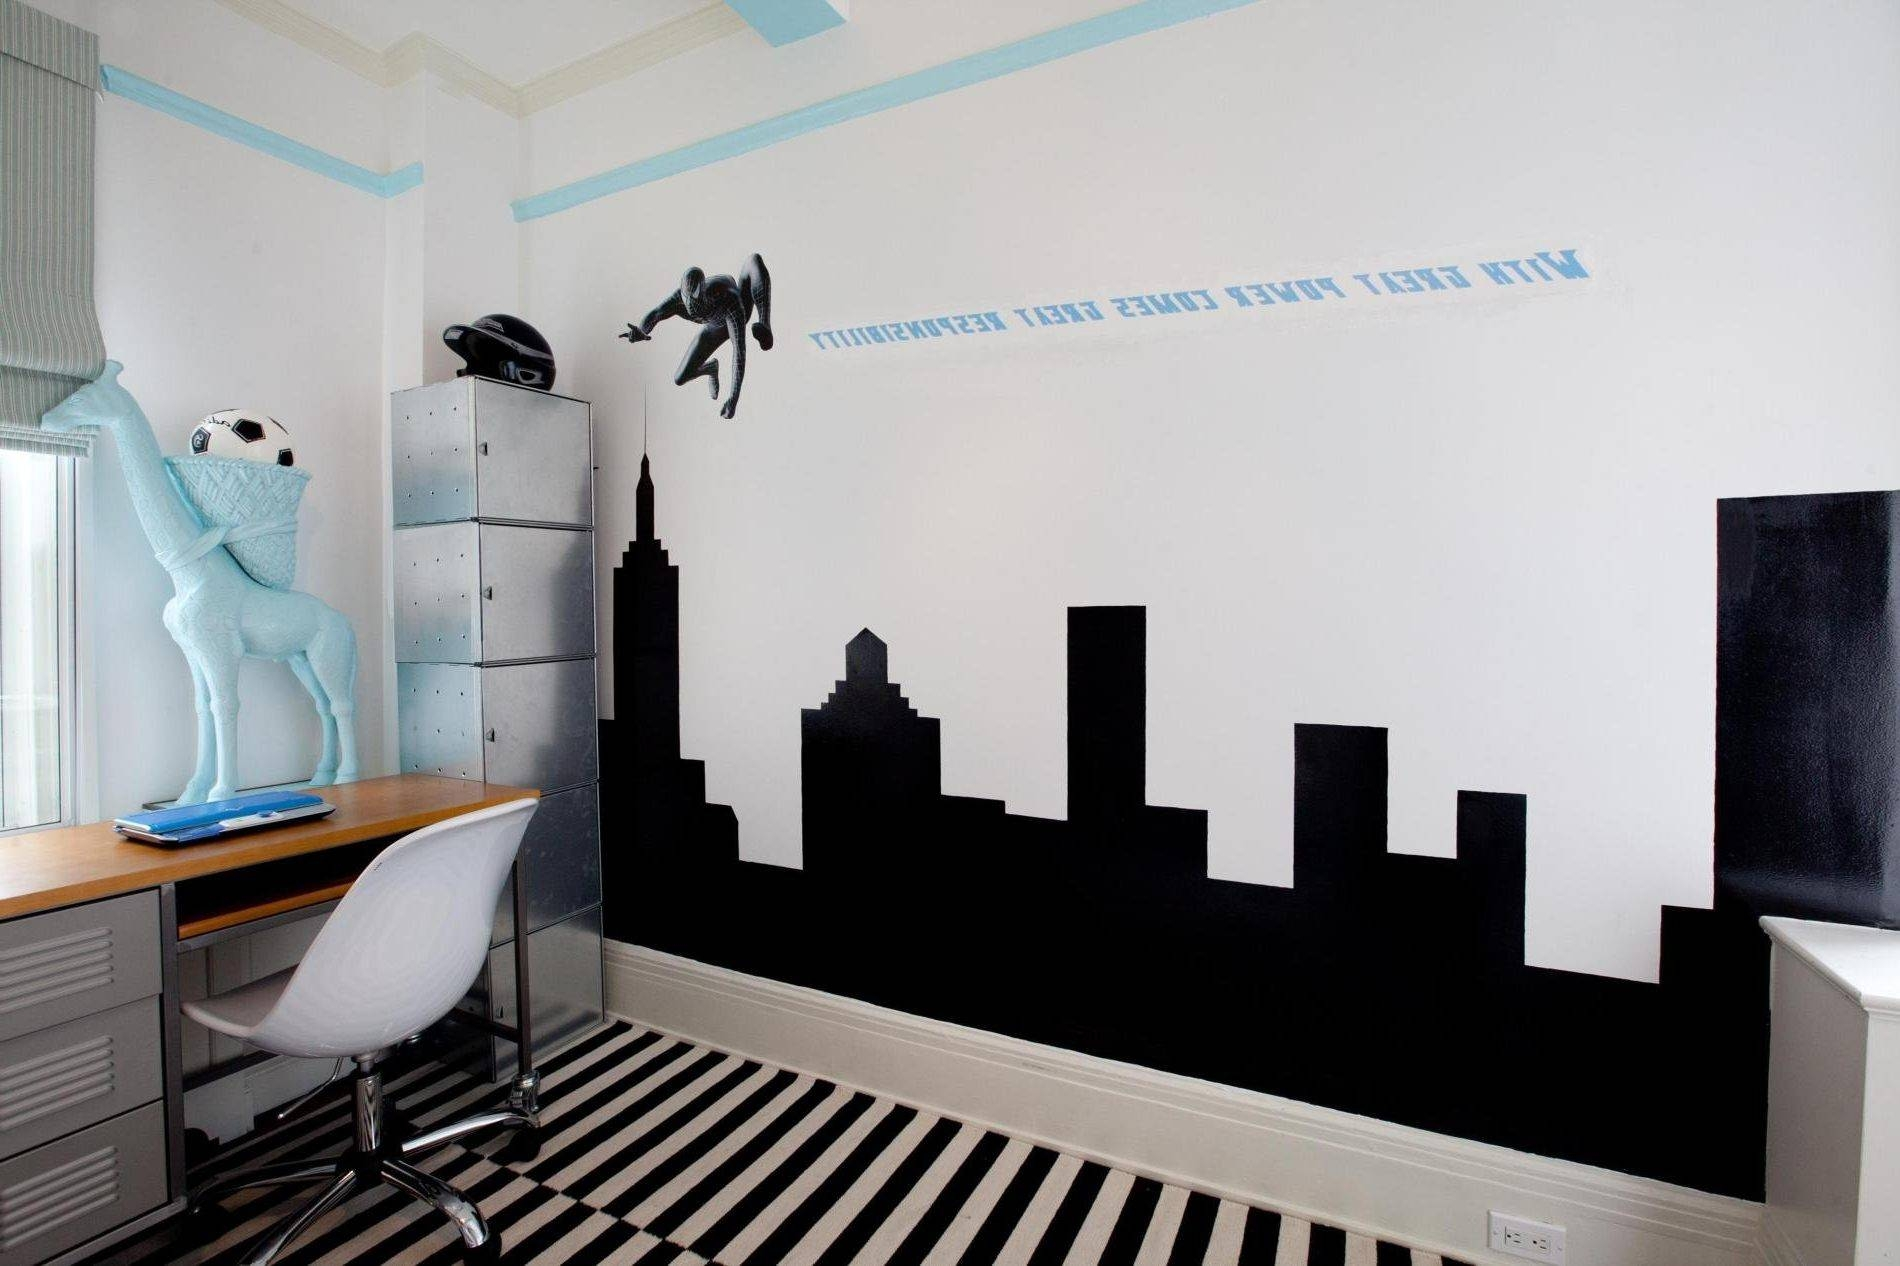 Graffiti Wall Art Names | Bedroom Graffiti Mural Room Wallpaper In Latest Graffiti Wall Art Stickers (Gallery 24 of 30)